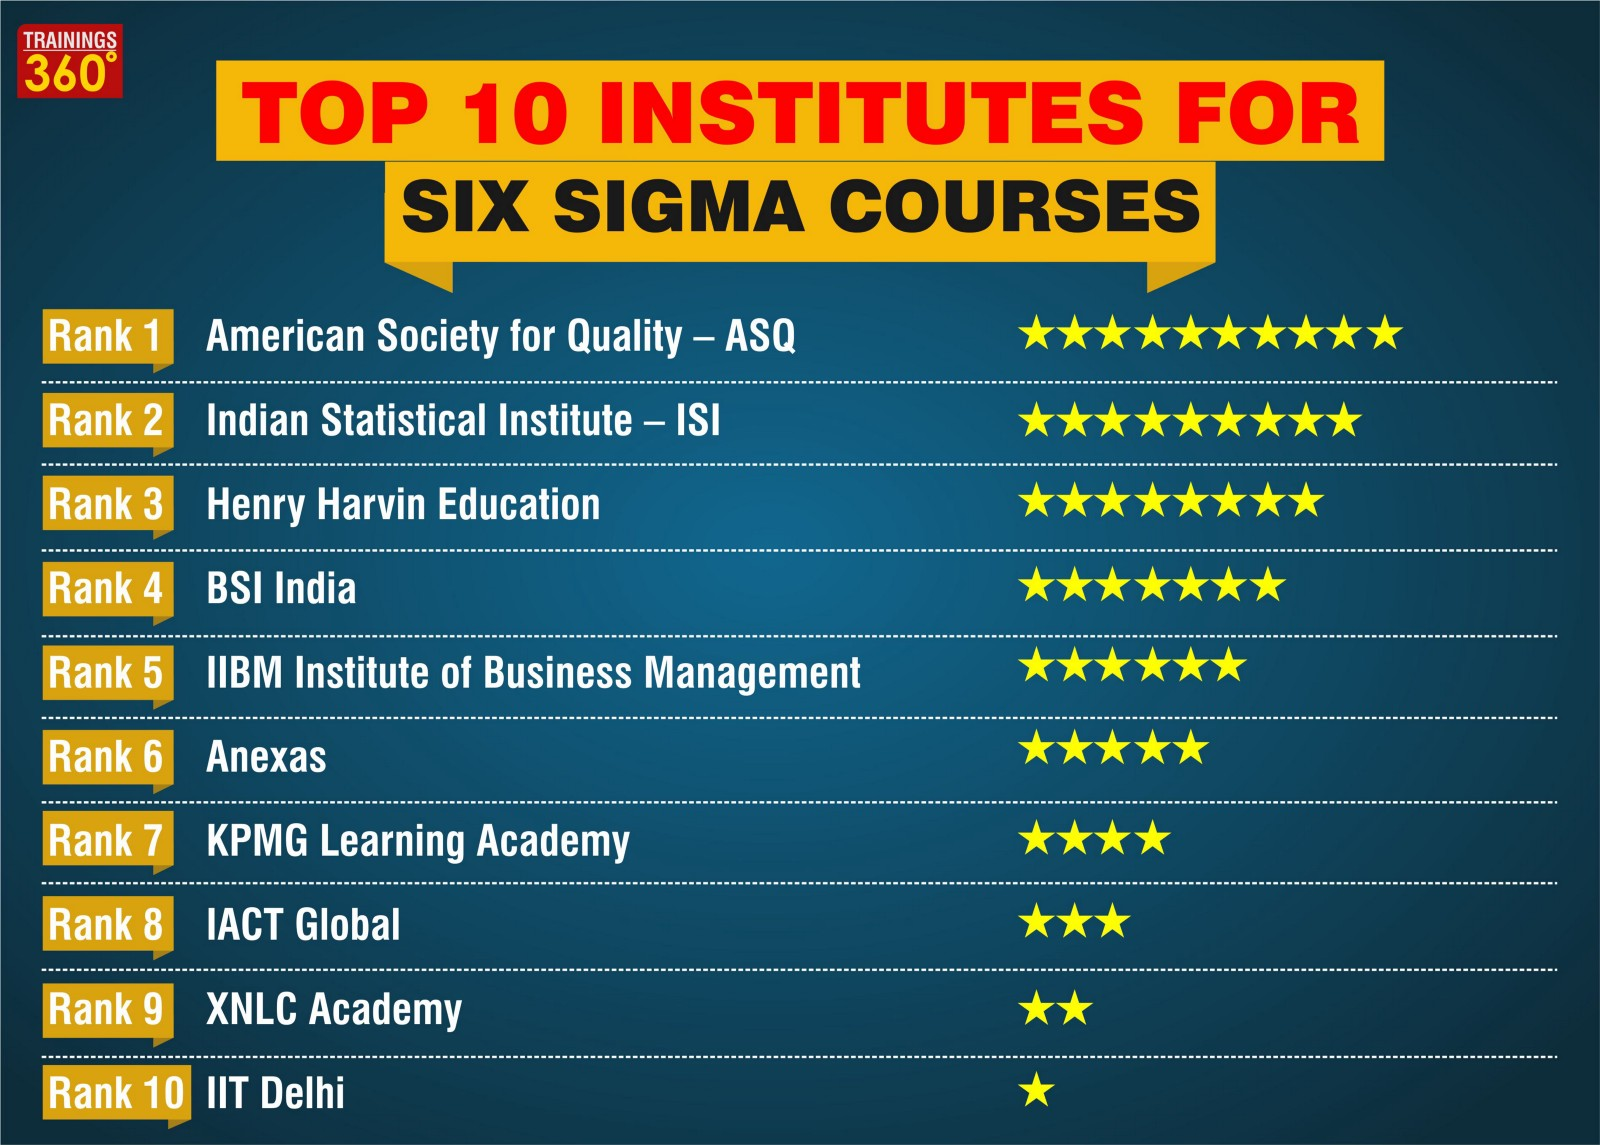 Top 10 Institutes For Six Sigma Courses – Trainings360